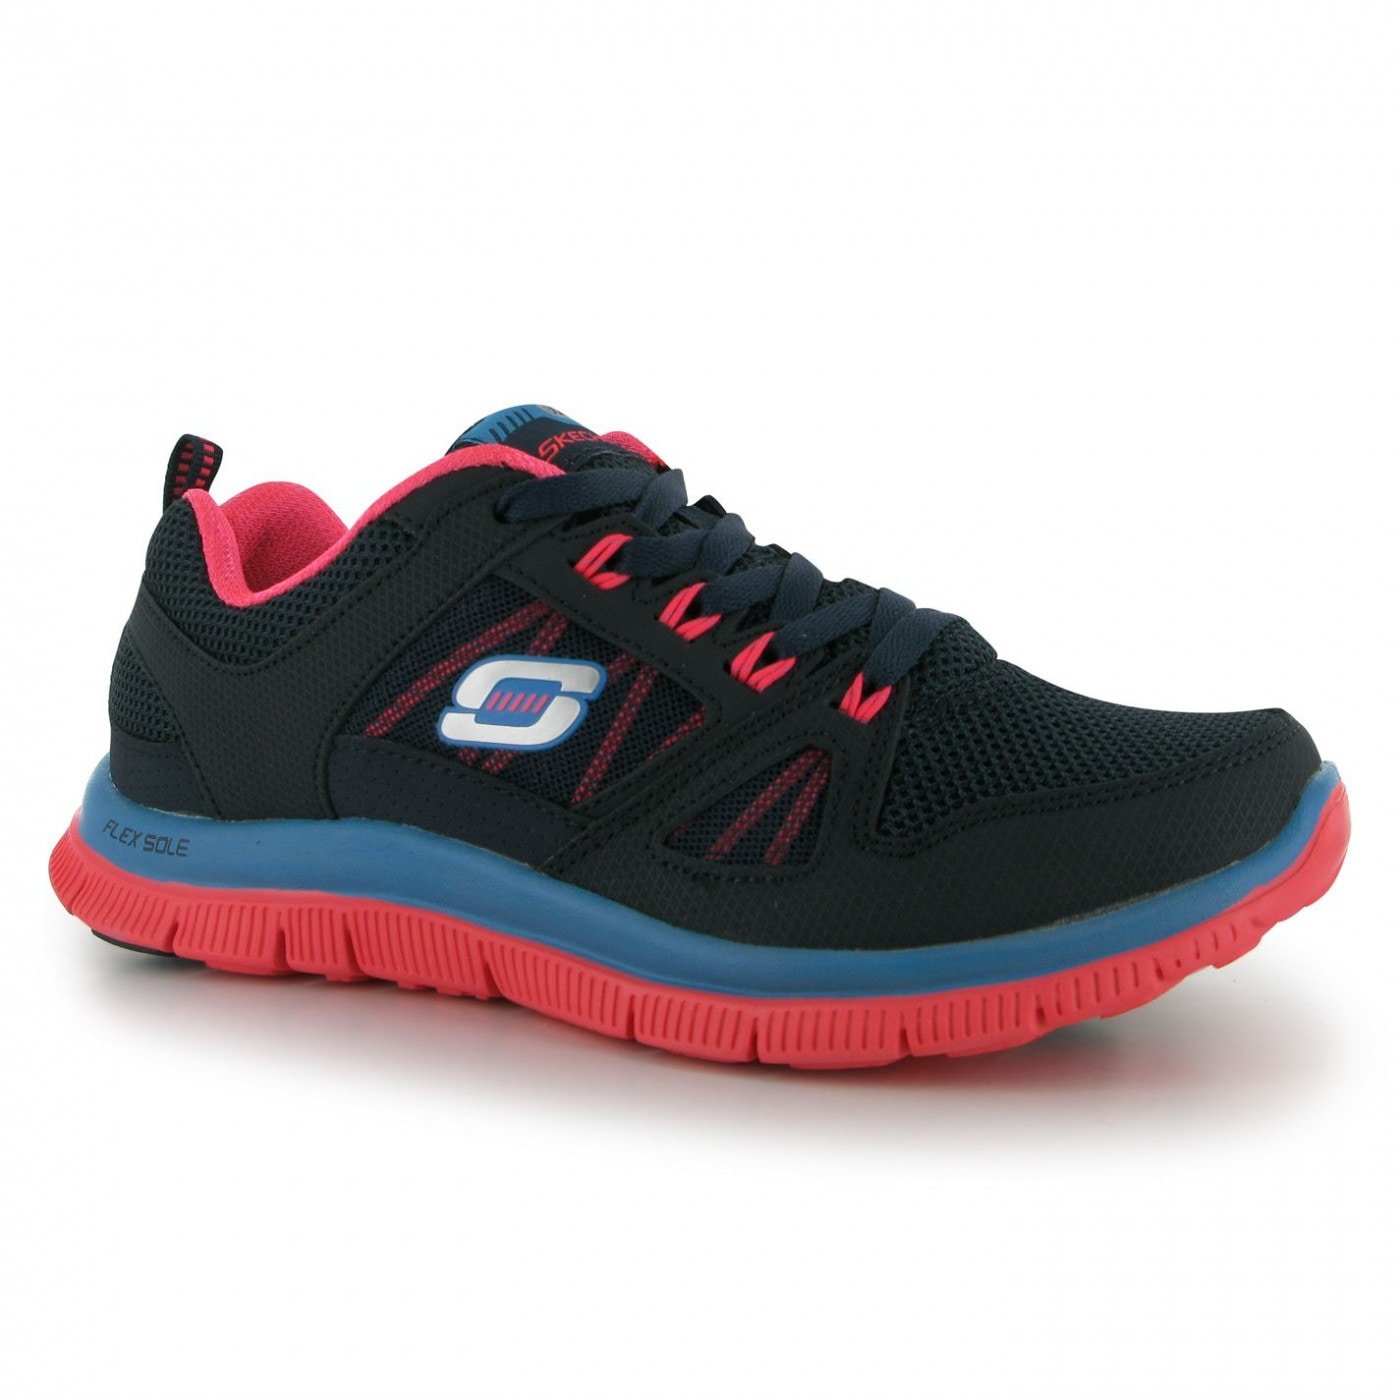 440c4db21a1 Skechers Flex Appeal Spring Fever Ladies Trainers - FACTCOOL